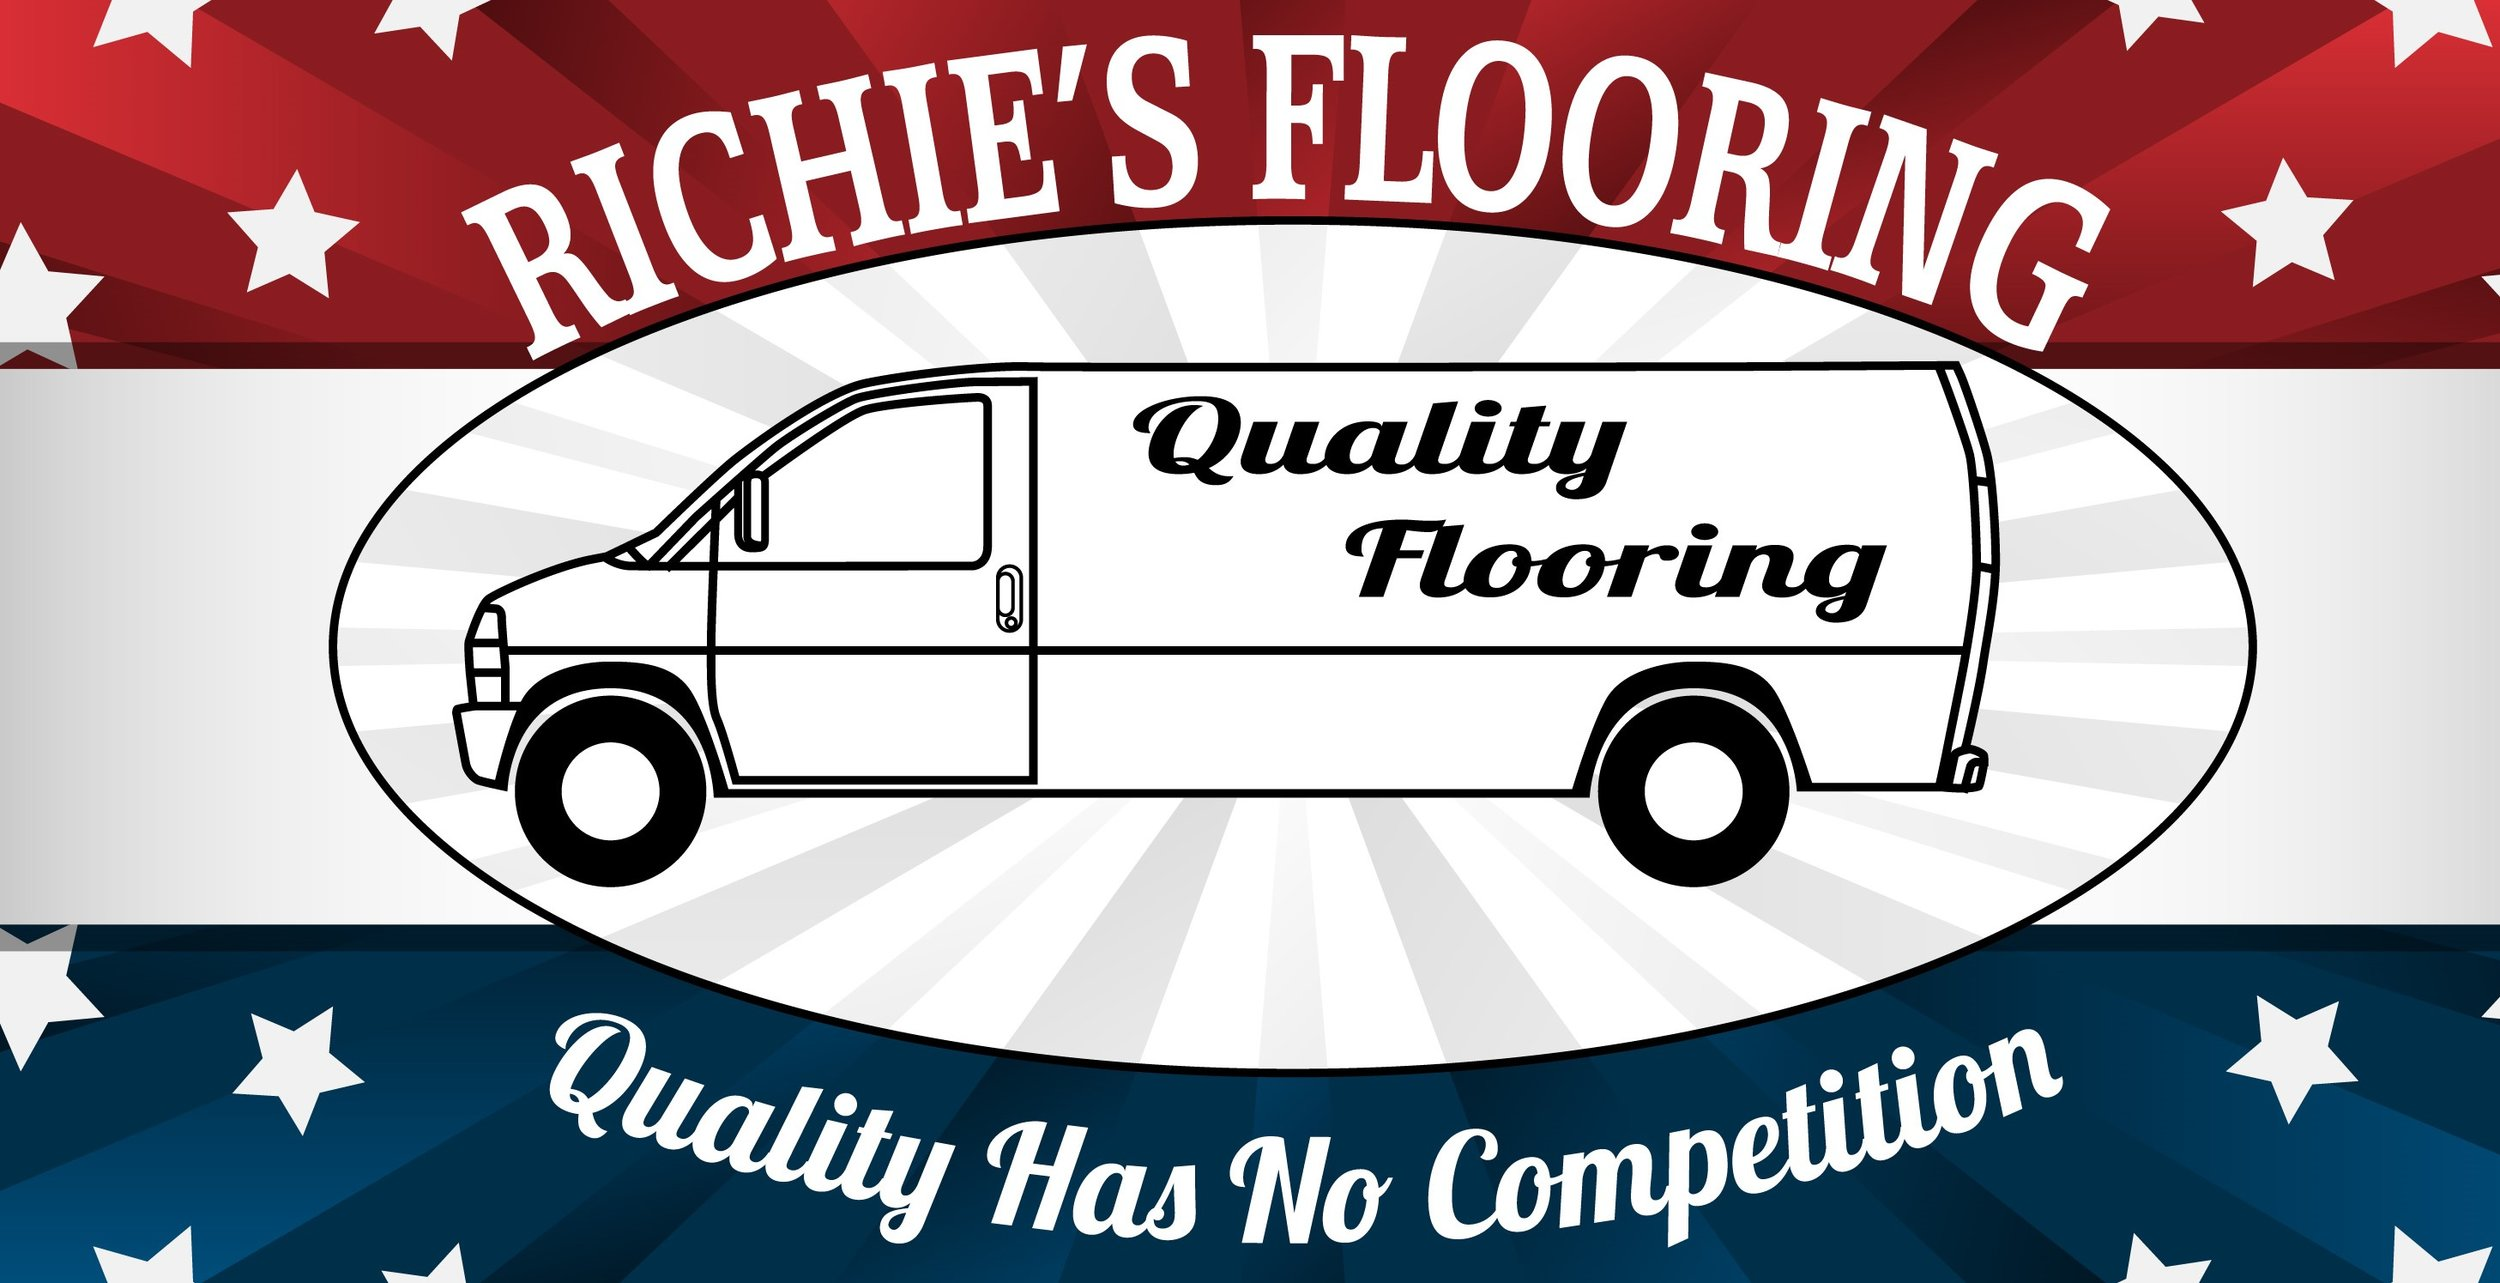 Richies Flooring - New Logo.jpg